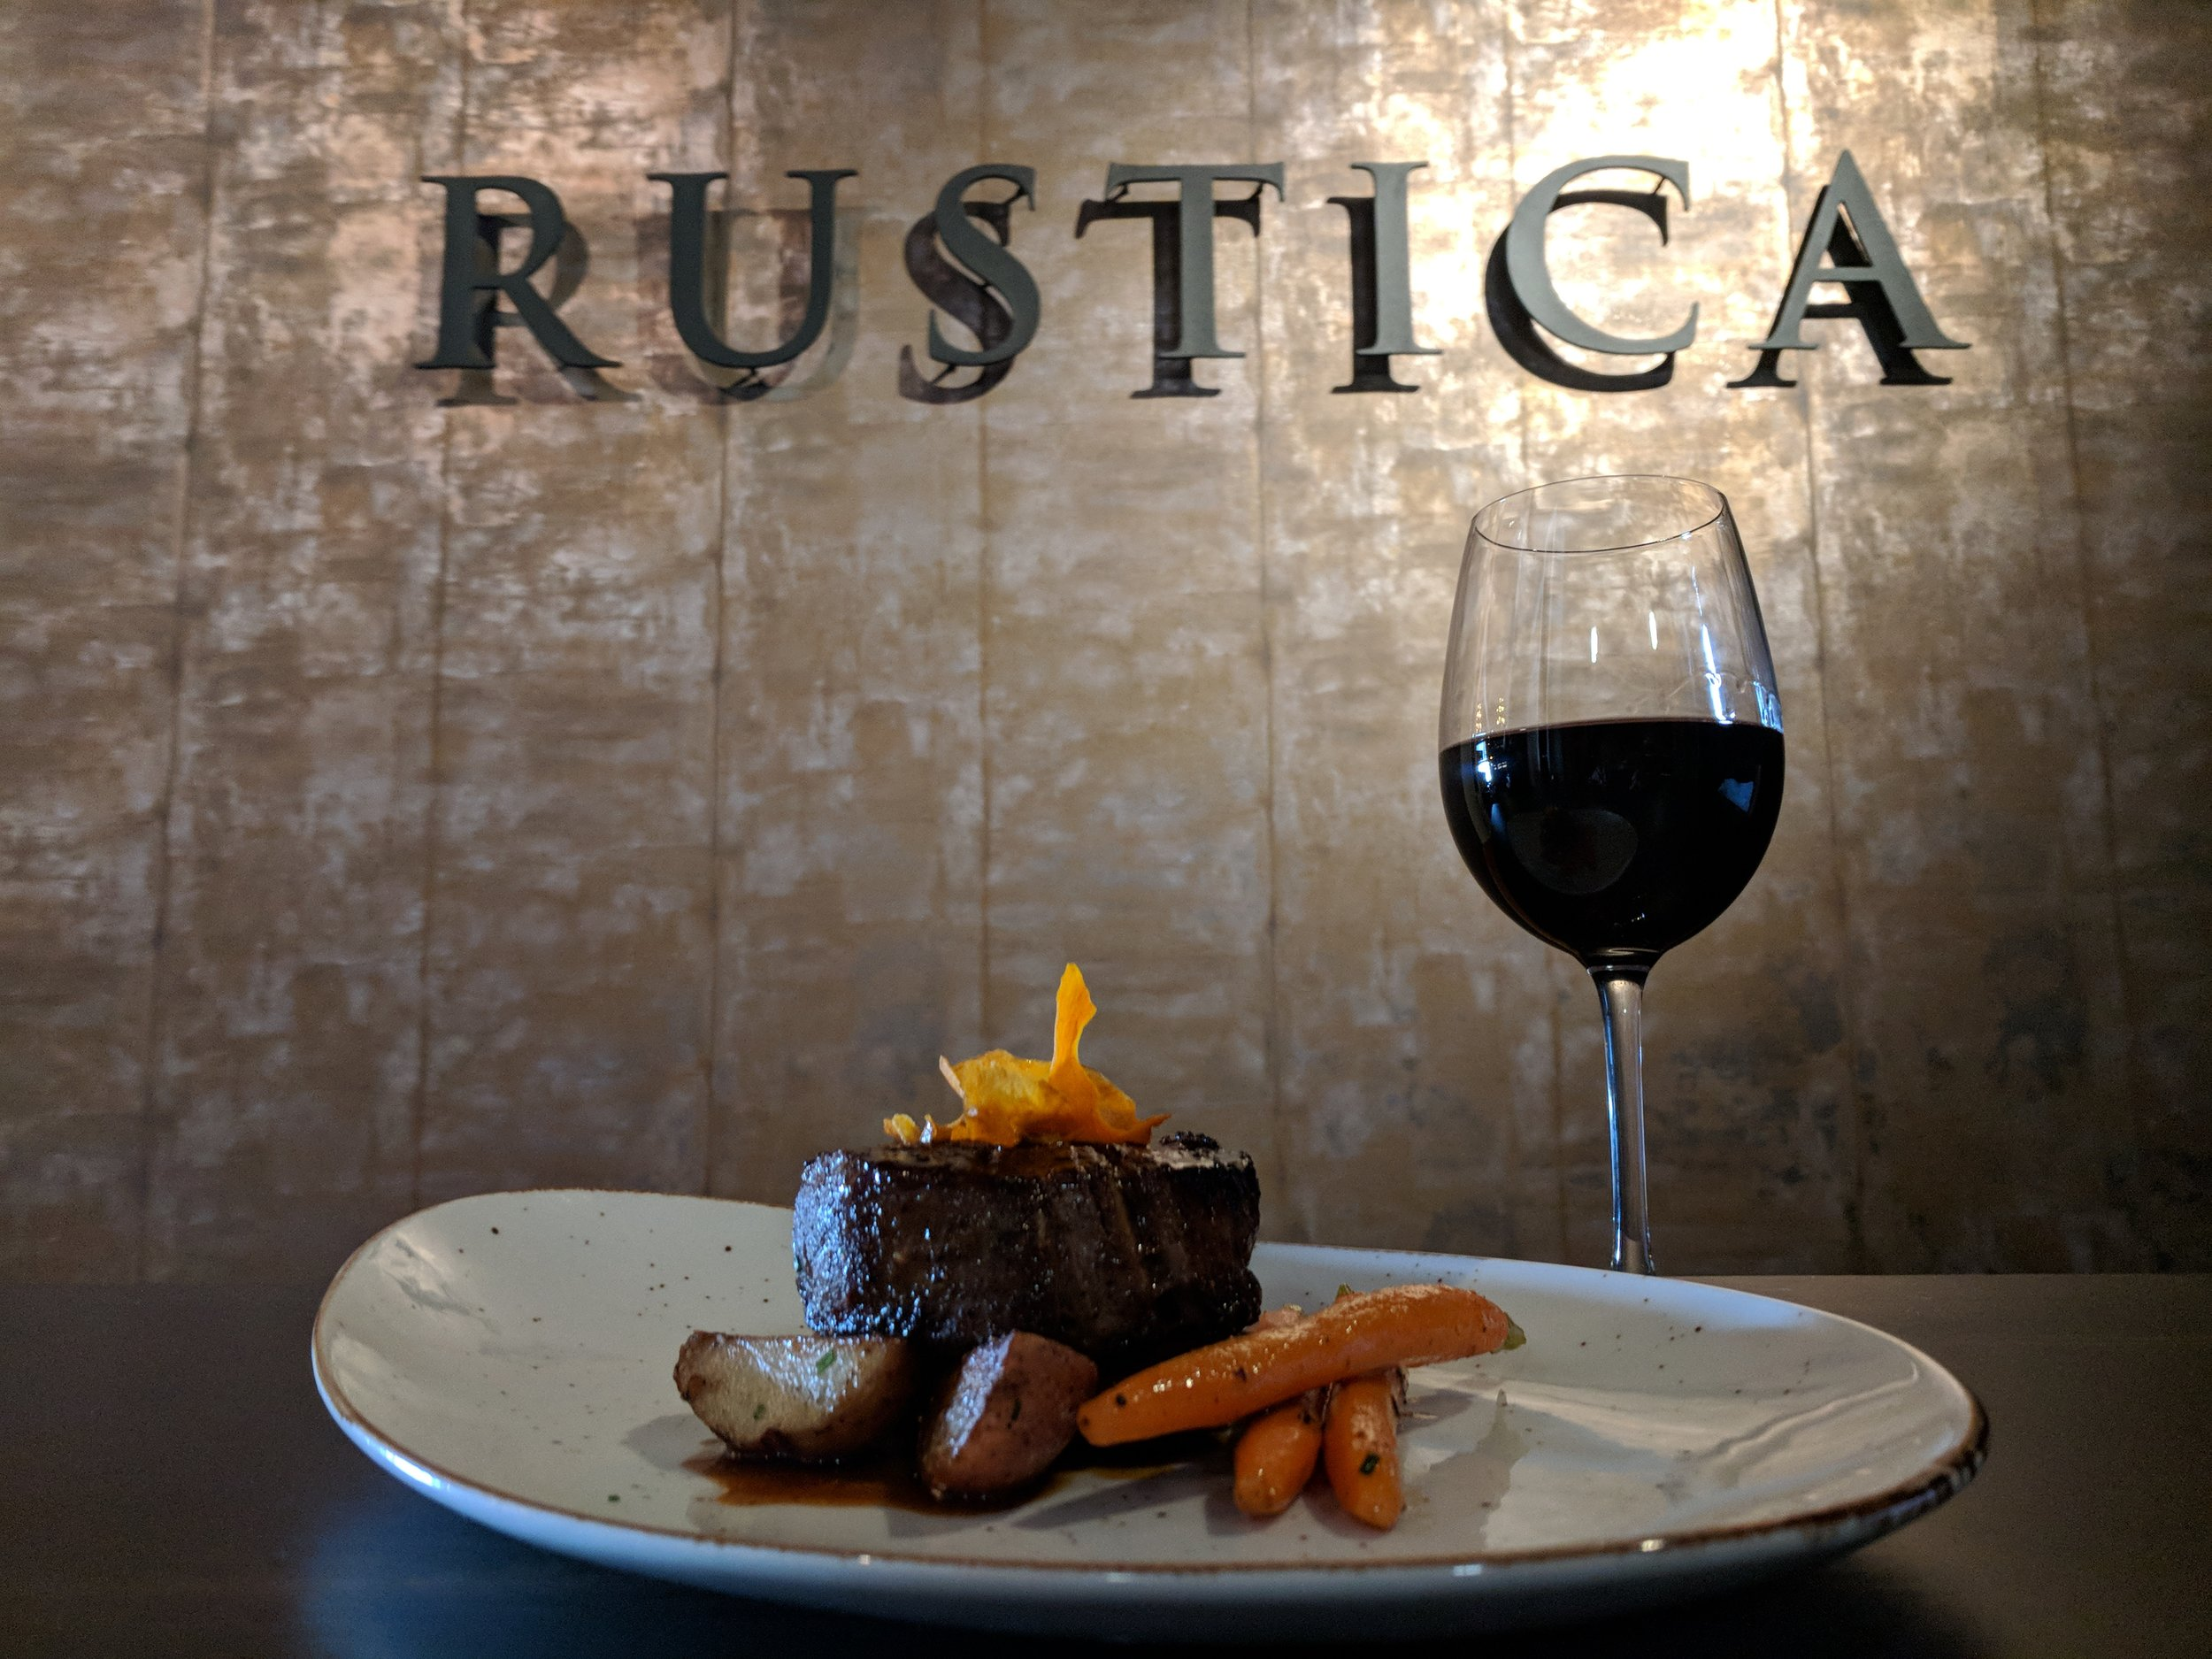 Serving only 100% Canadian Prime beef (Canada's best), a Rustica steak is always memorable.